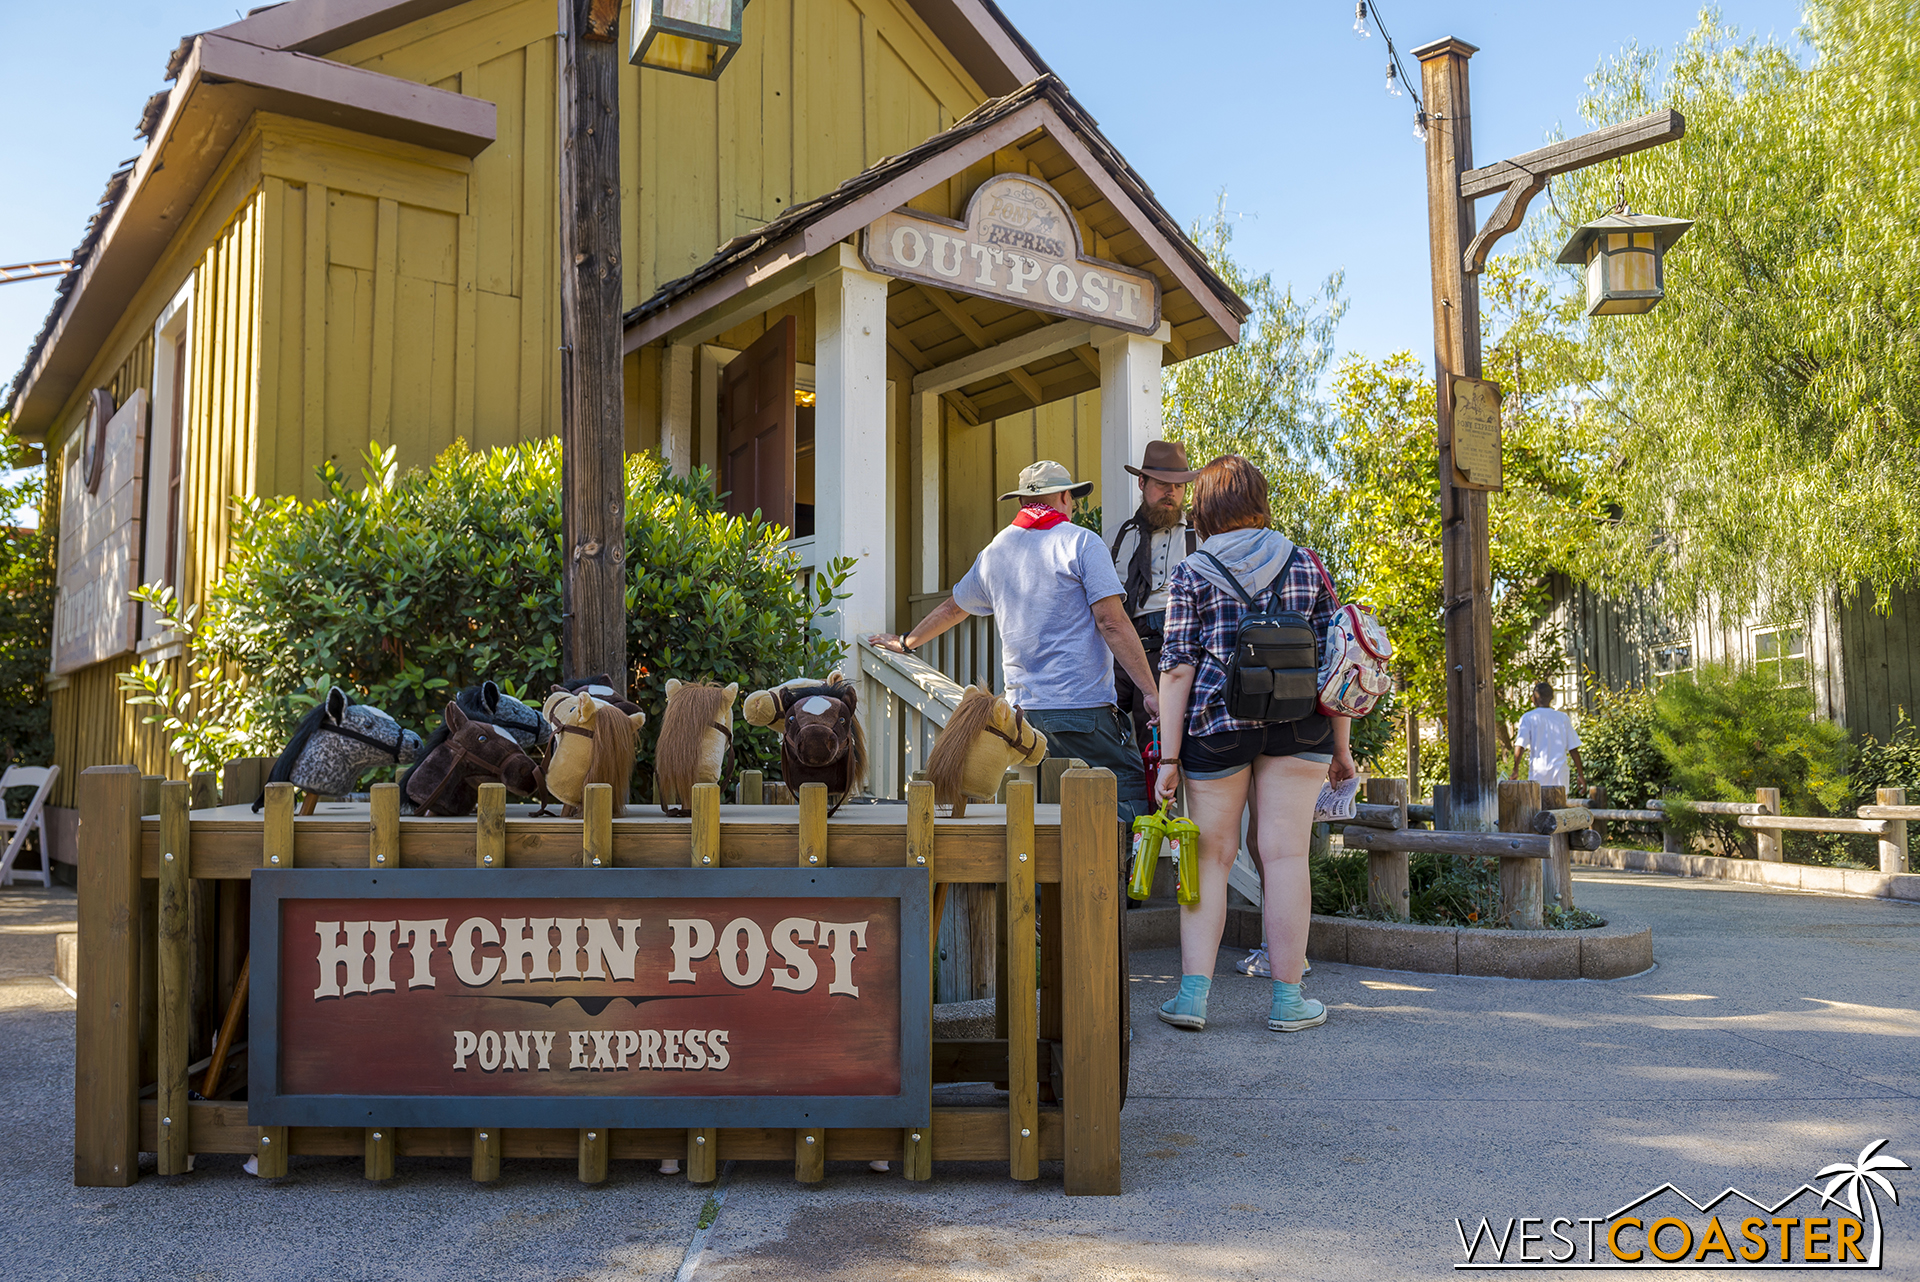 Over near the Pony Express roller coaster, a Pony Express office has opened.